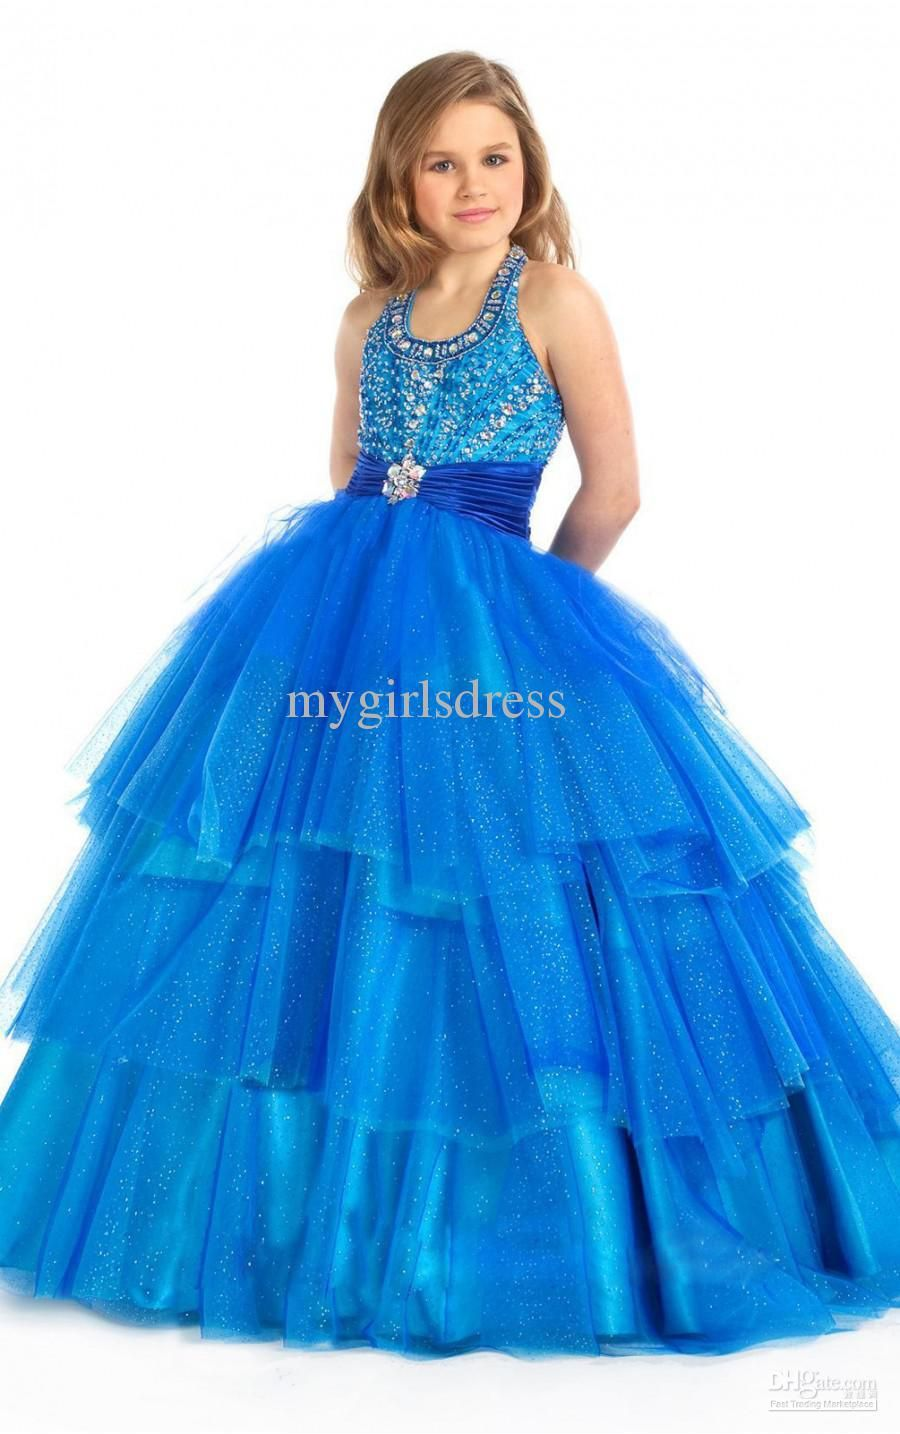 New style blue halter cute girl kids pageant bridesmaid dance new style blue halter cute girl kids pageant bridesmaid dance party princess ball gown formal dresses custom made ombrellifo Images